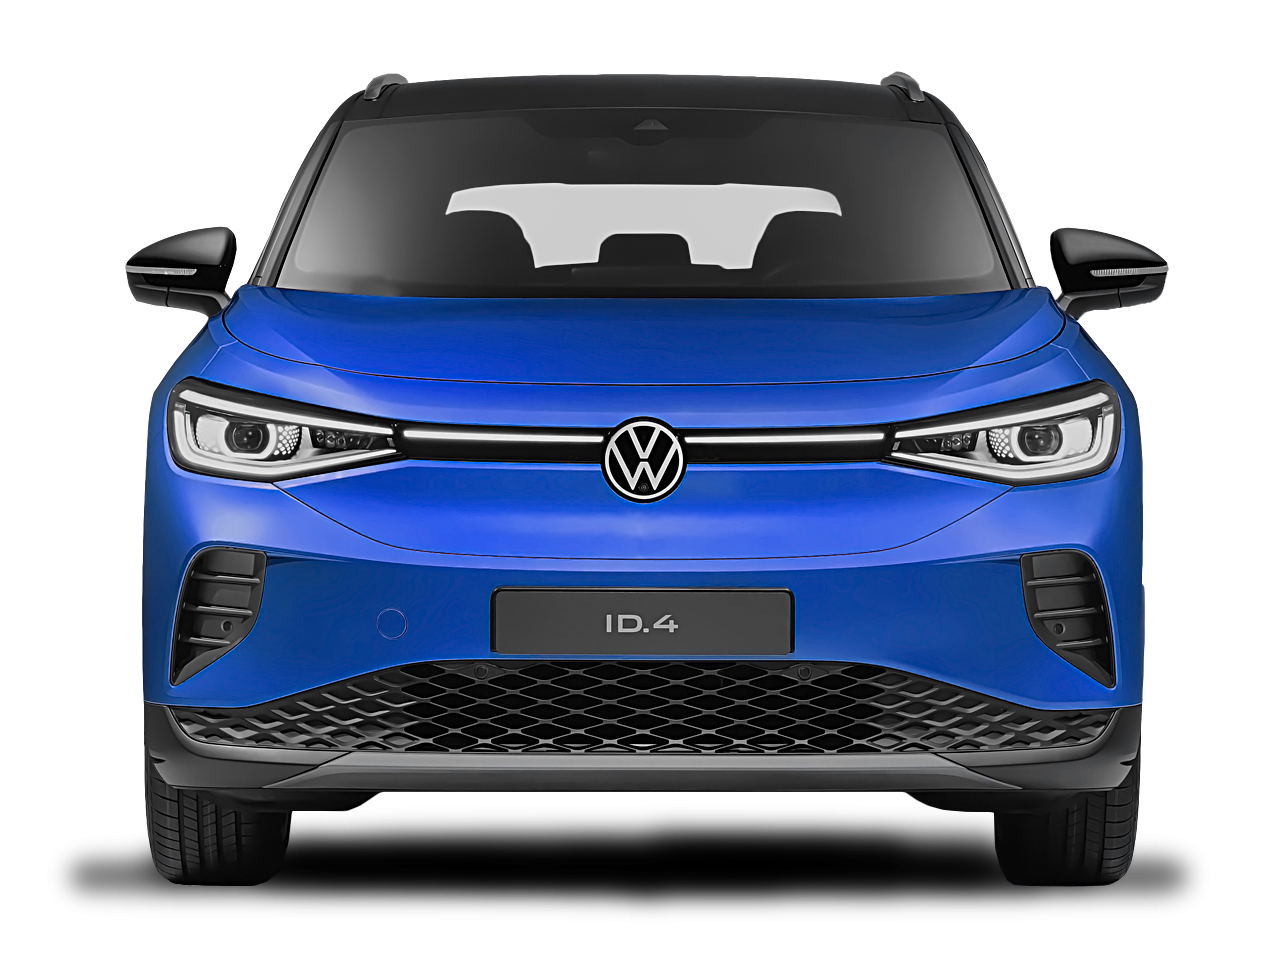 Front view of the Volkswagen ID.4